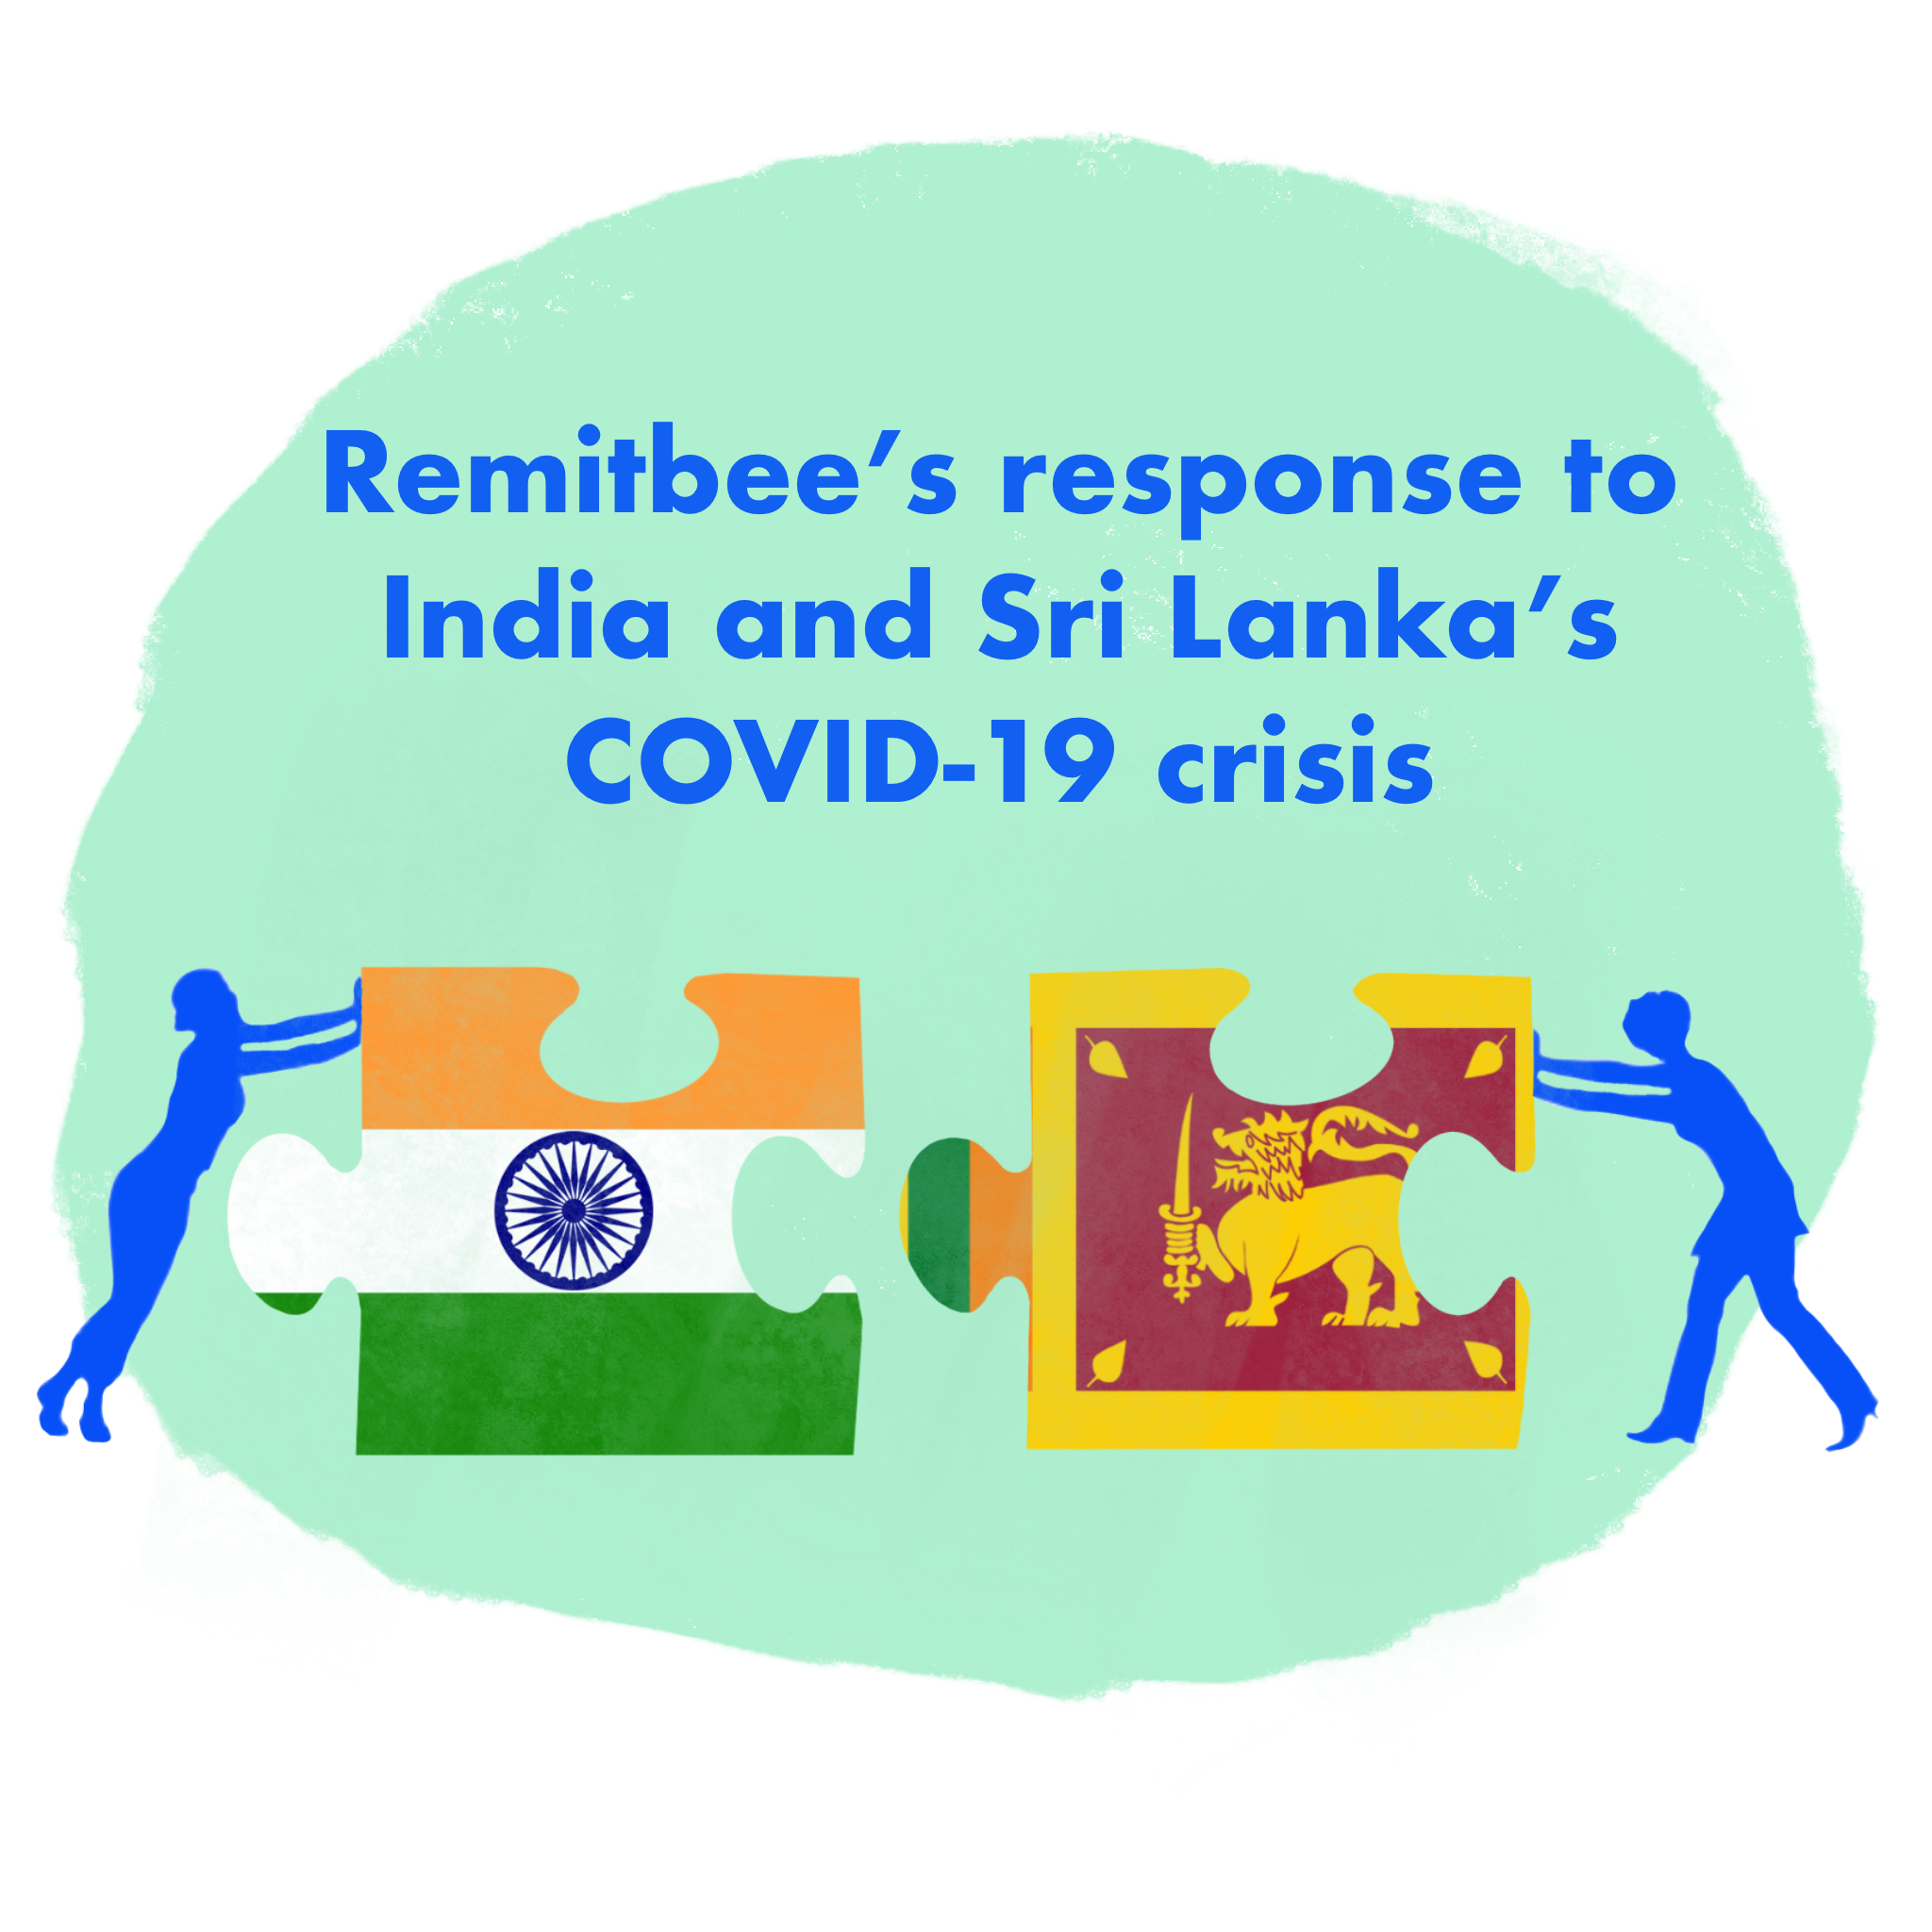 Remitbee response to India's COVID Crisis